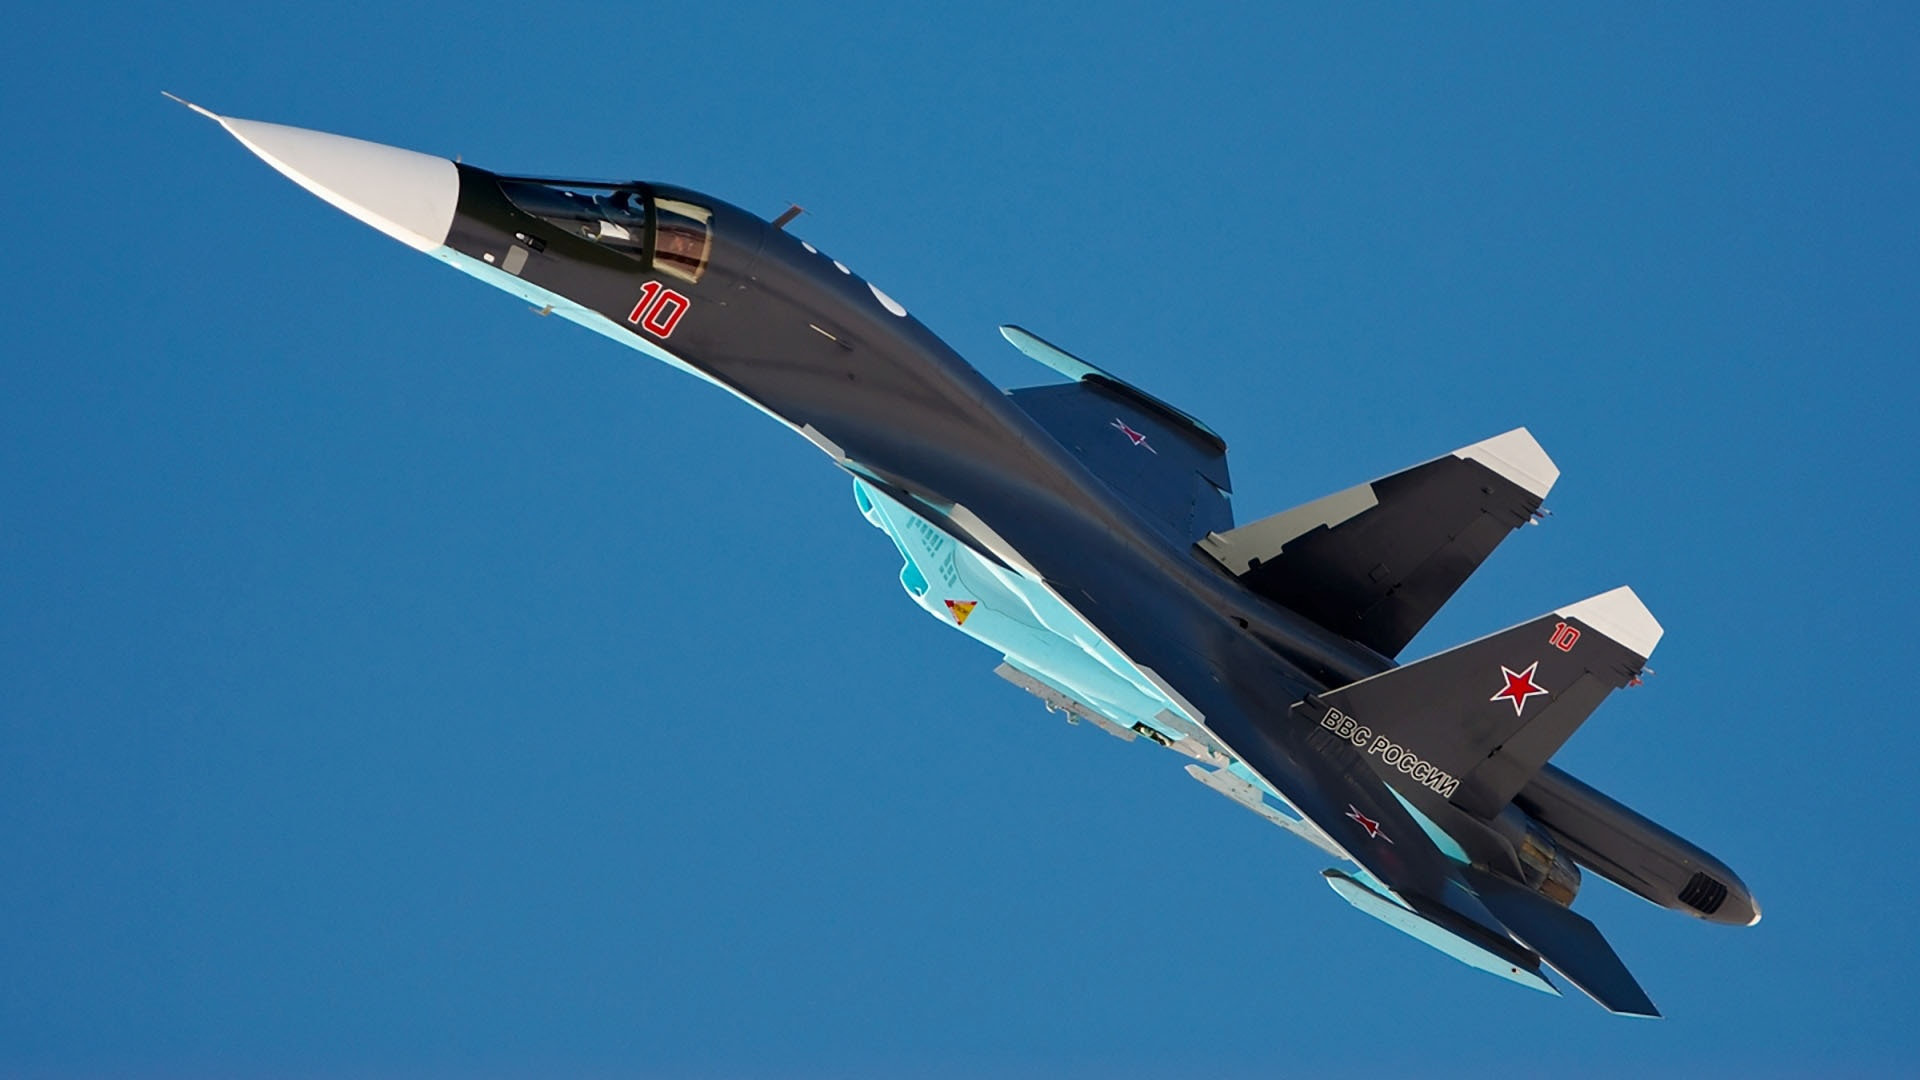 SUKHOI SU-34 FULLBACK ( HD 1080p ) - YouTube